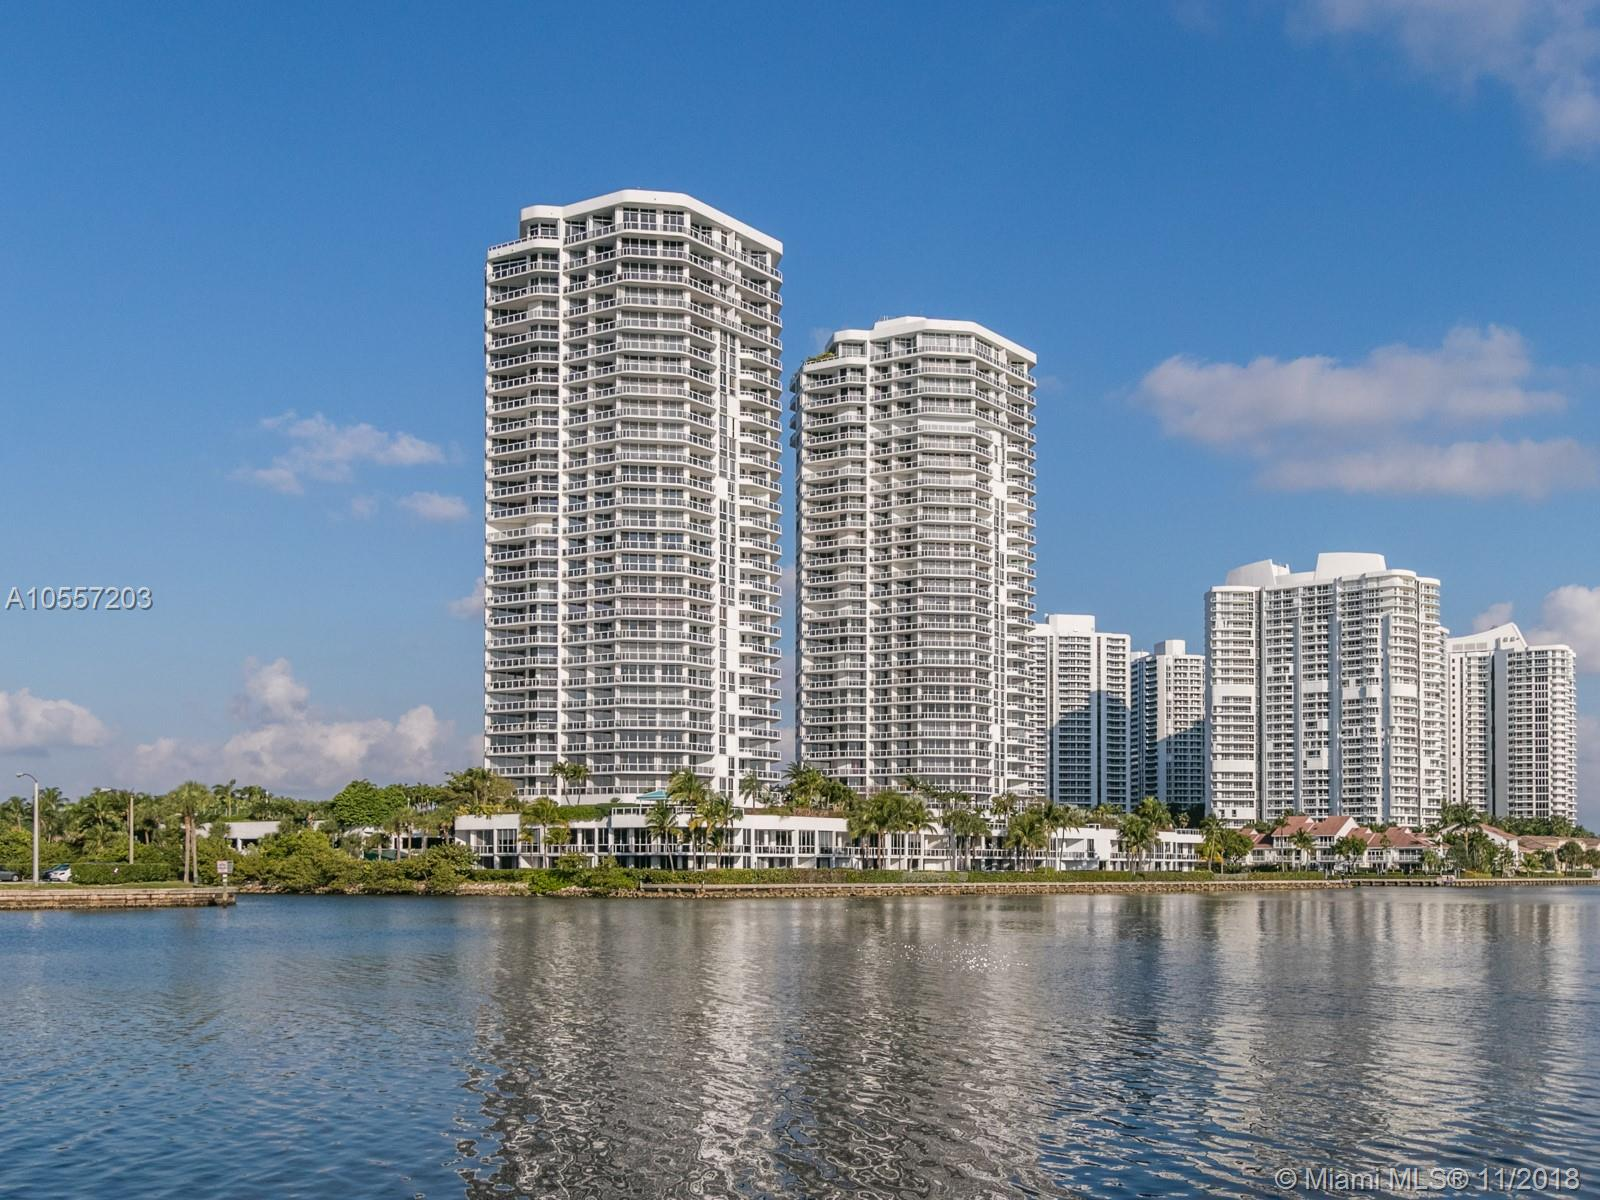 3802 NE 207th St #902 For Sale A10557203, FL